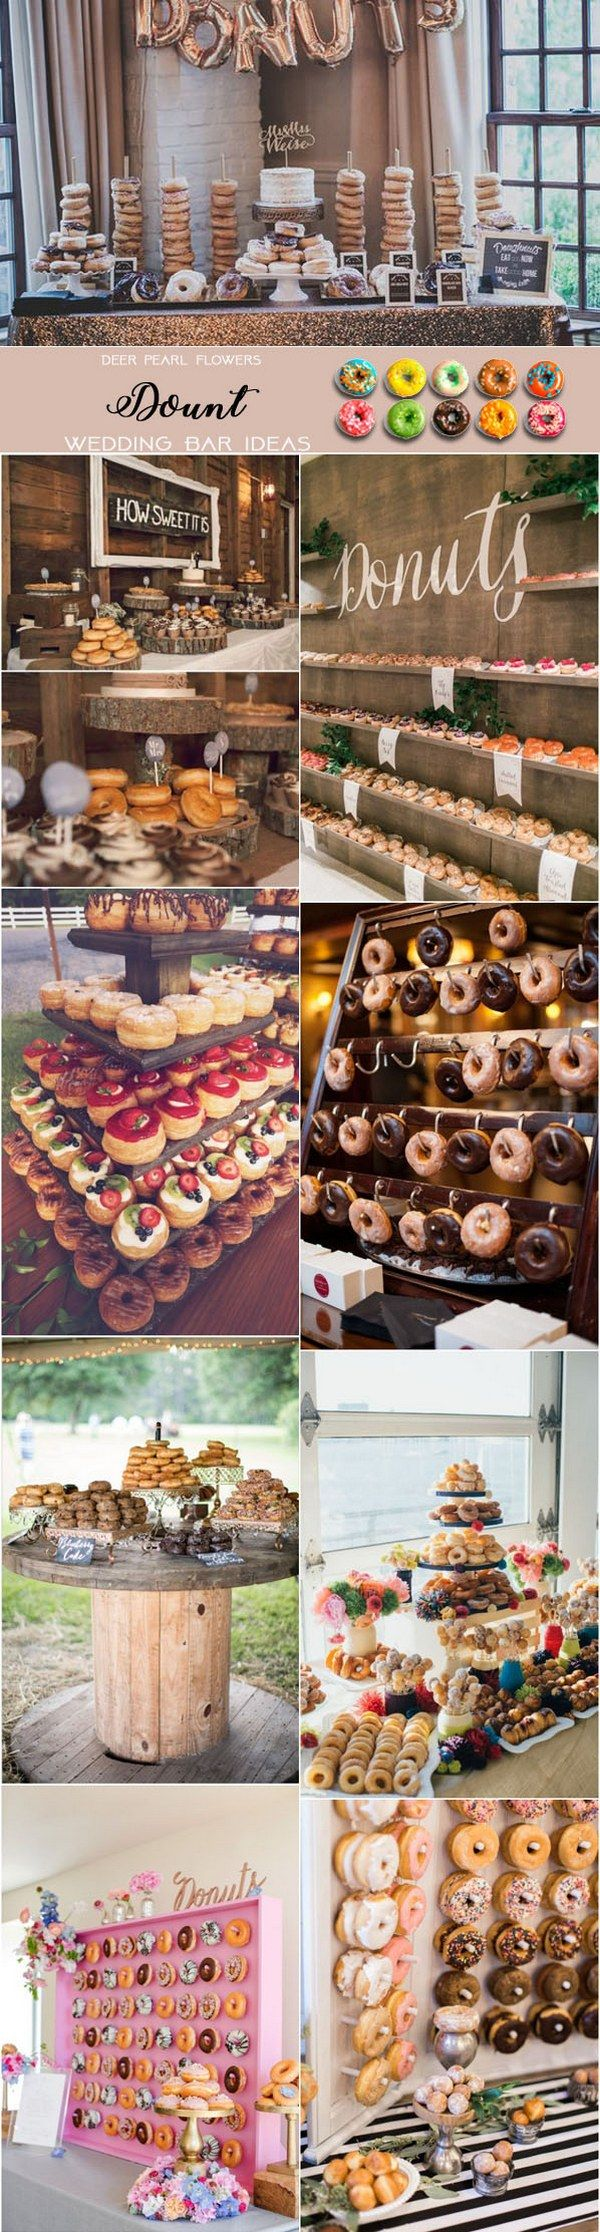 wedding catering trends top 8 wedding dessert bar ideas wedding pinterest ideen f r die. Black Bedroom Furniture Sets. Home Design Ideas